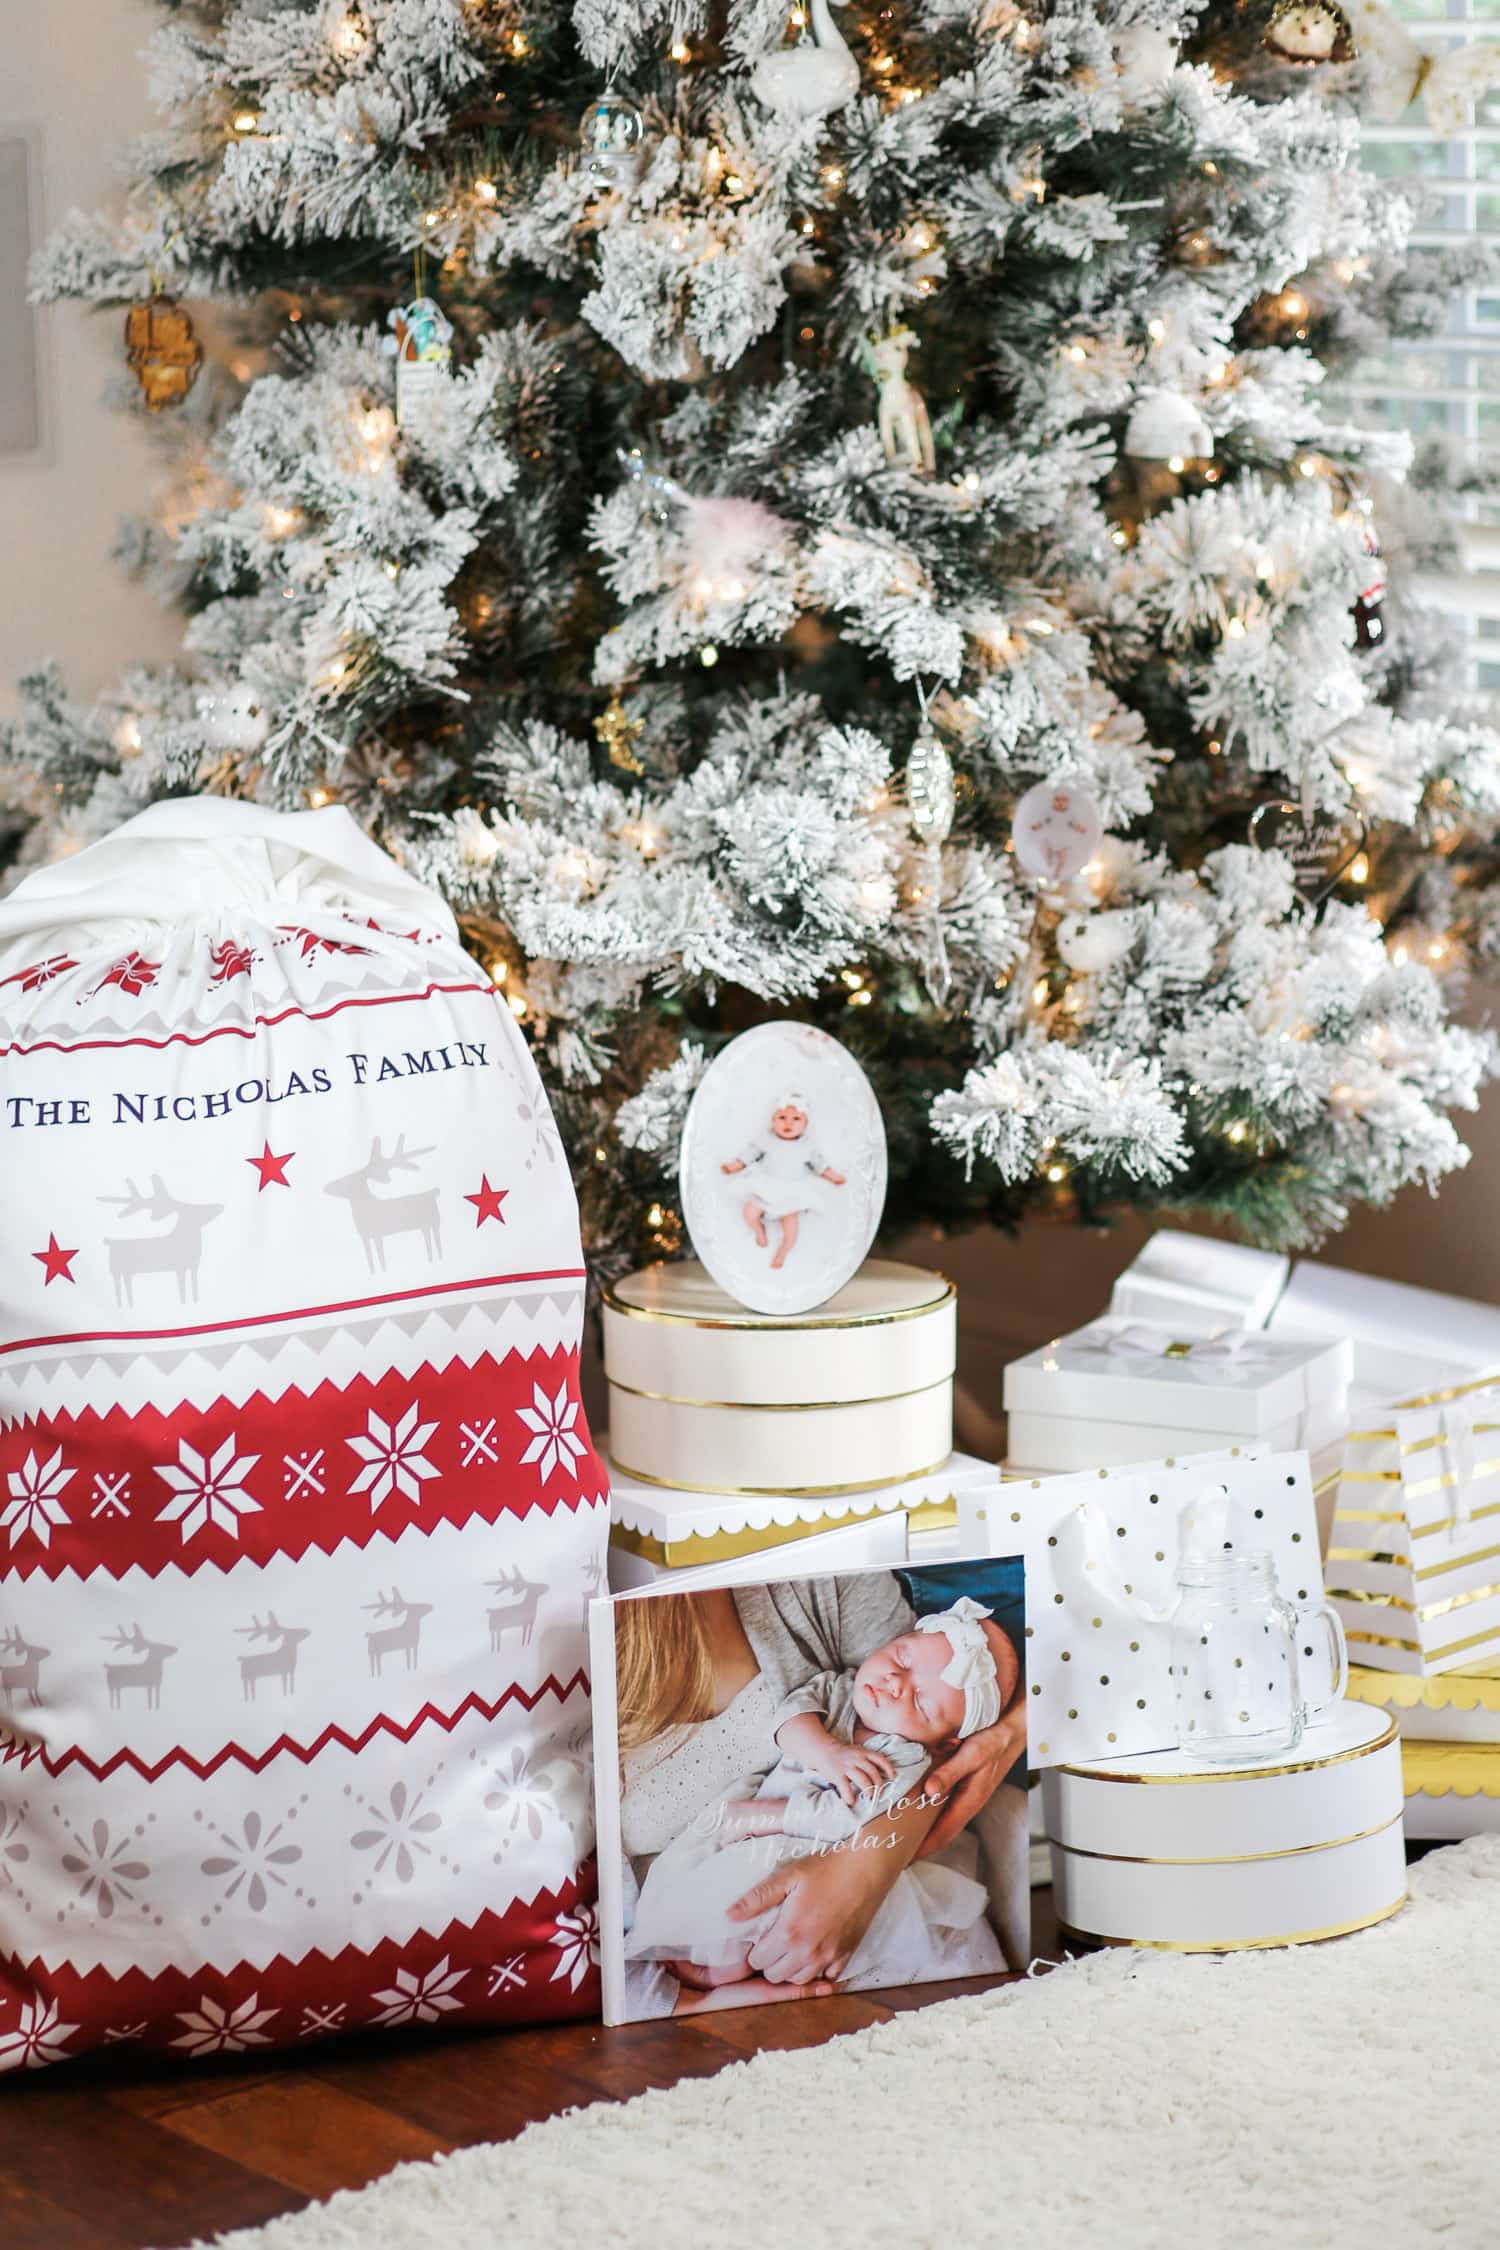 Personalized Christmas Gift Ideas From Shutterfly Ashley Brooke